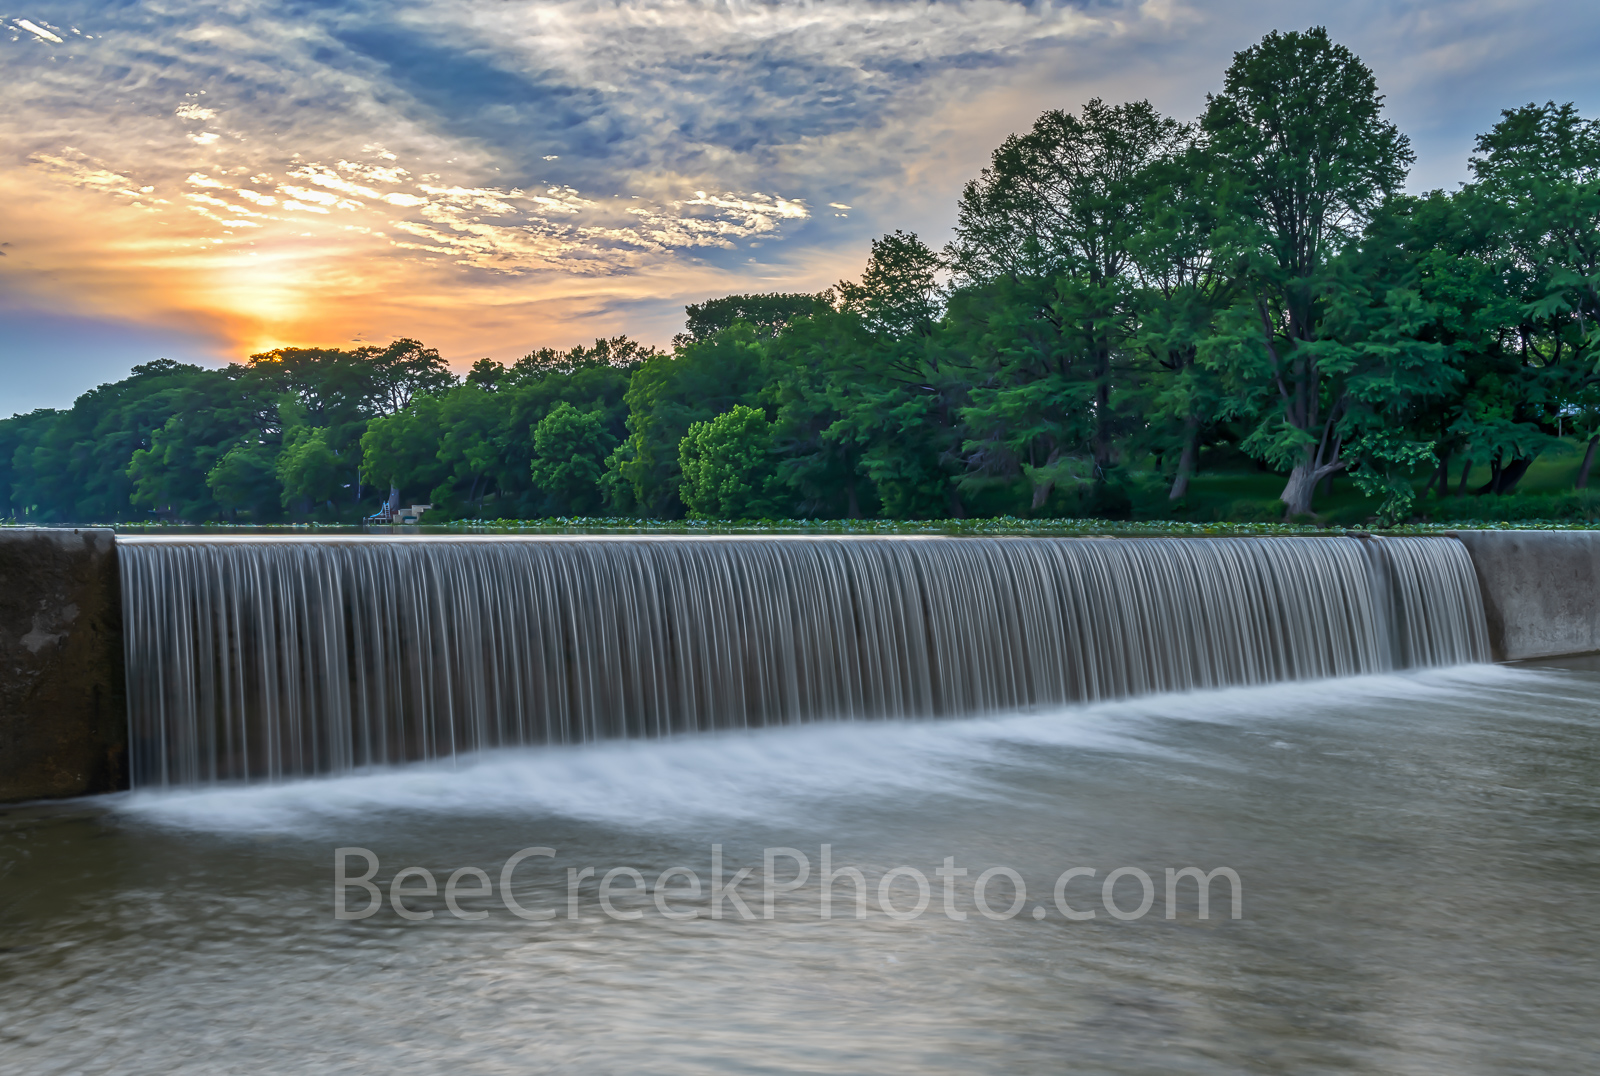 Texas Hill country, Guadalupe River, sunset, waterfall, Texas,  long exposure, landscape, nature, outdoors, river, outdoors, roared, running water, adventure, Canvas, Metal, Prints, Tod Grubbs, bee, photo